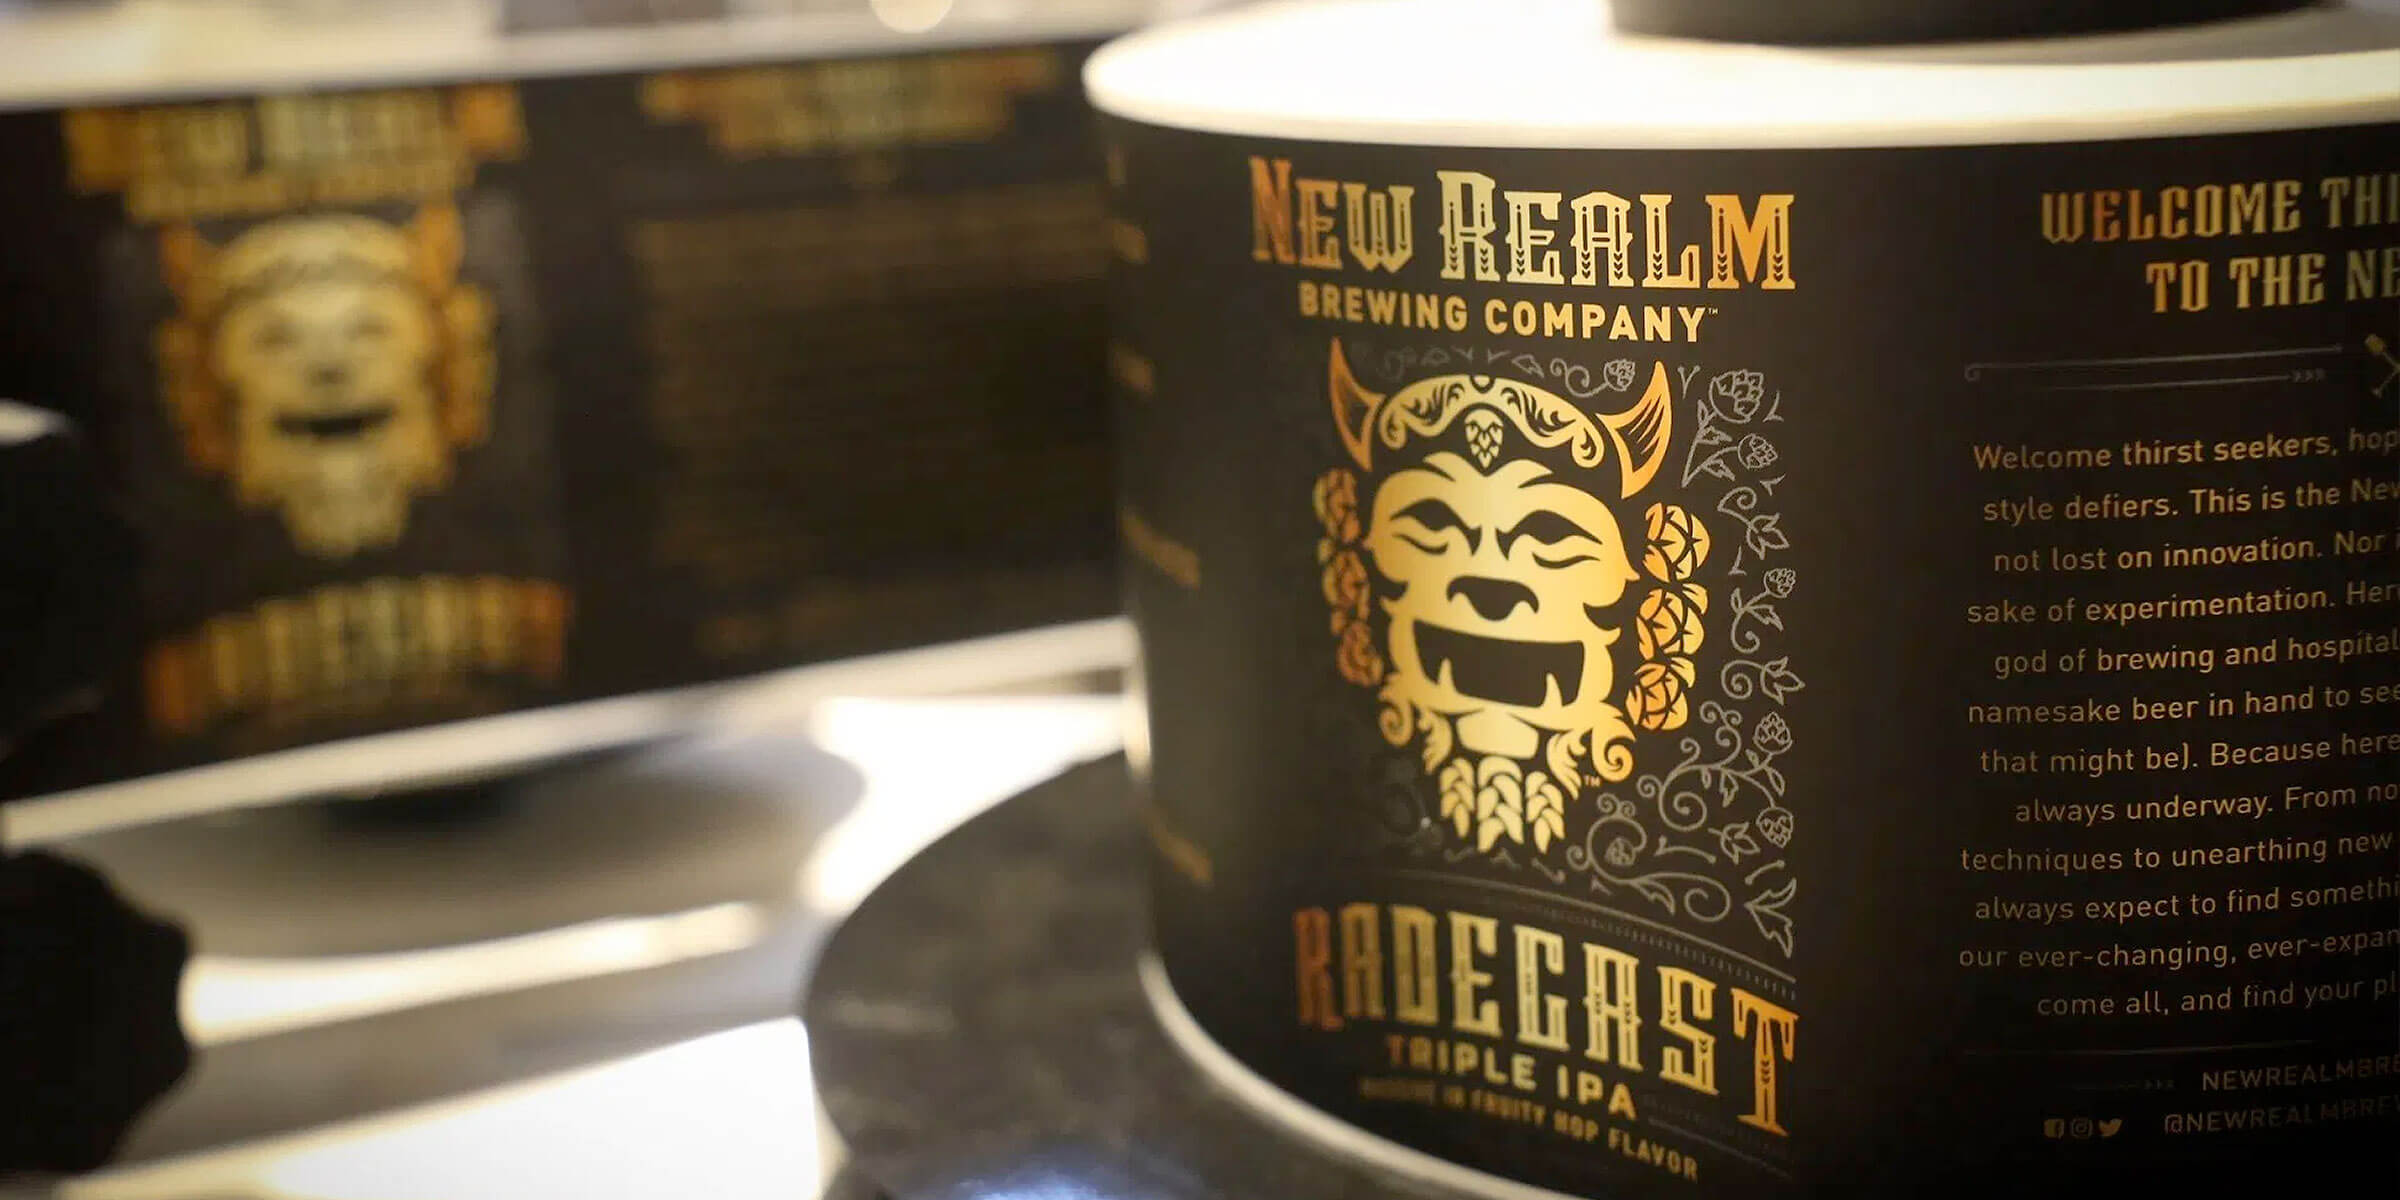 Radegast Triple IPA returns to celebrate its third year, commemorating the opening of New Realm Brewing Company's first brewery in January of each year.